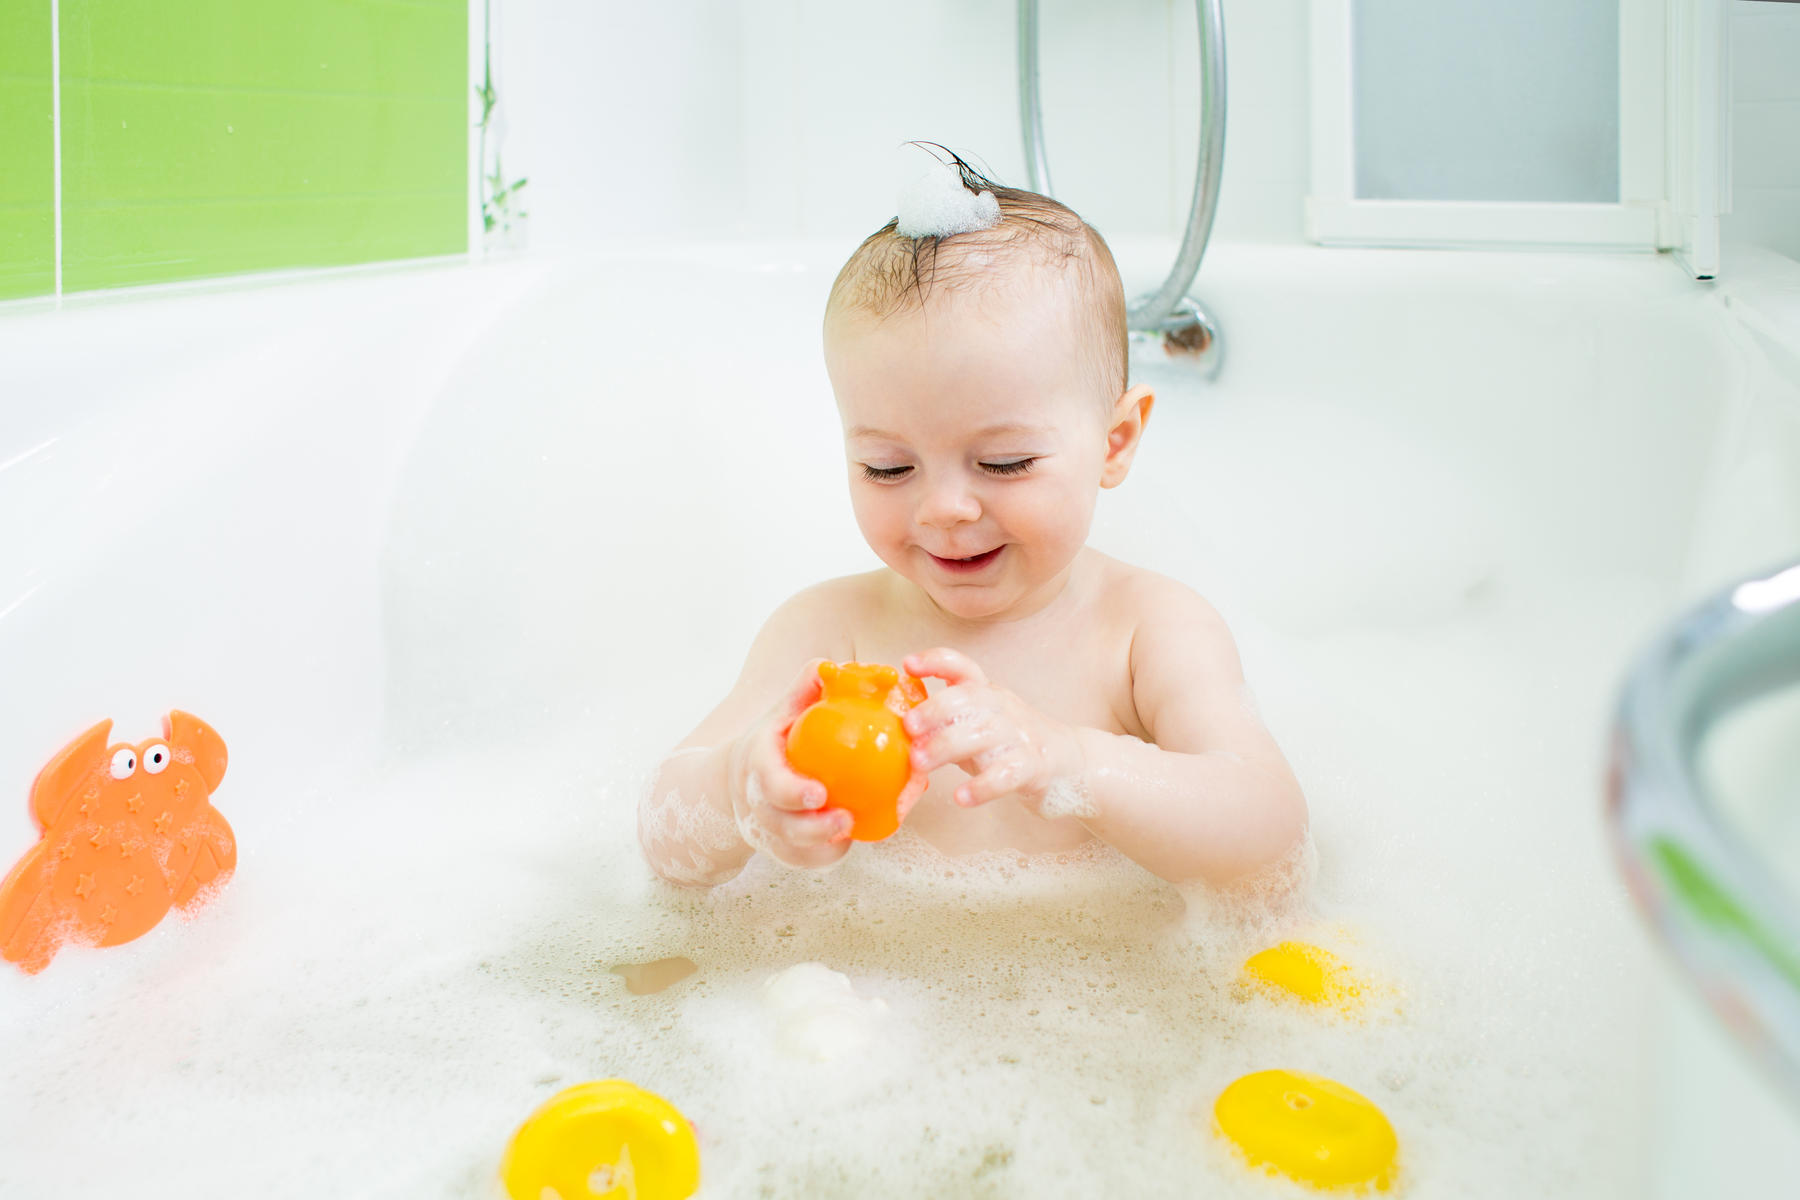 Keep Your Baby Safe: Tips for Playtime, Mealtime and More.